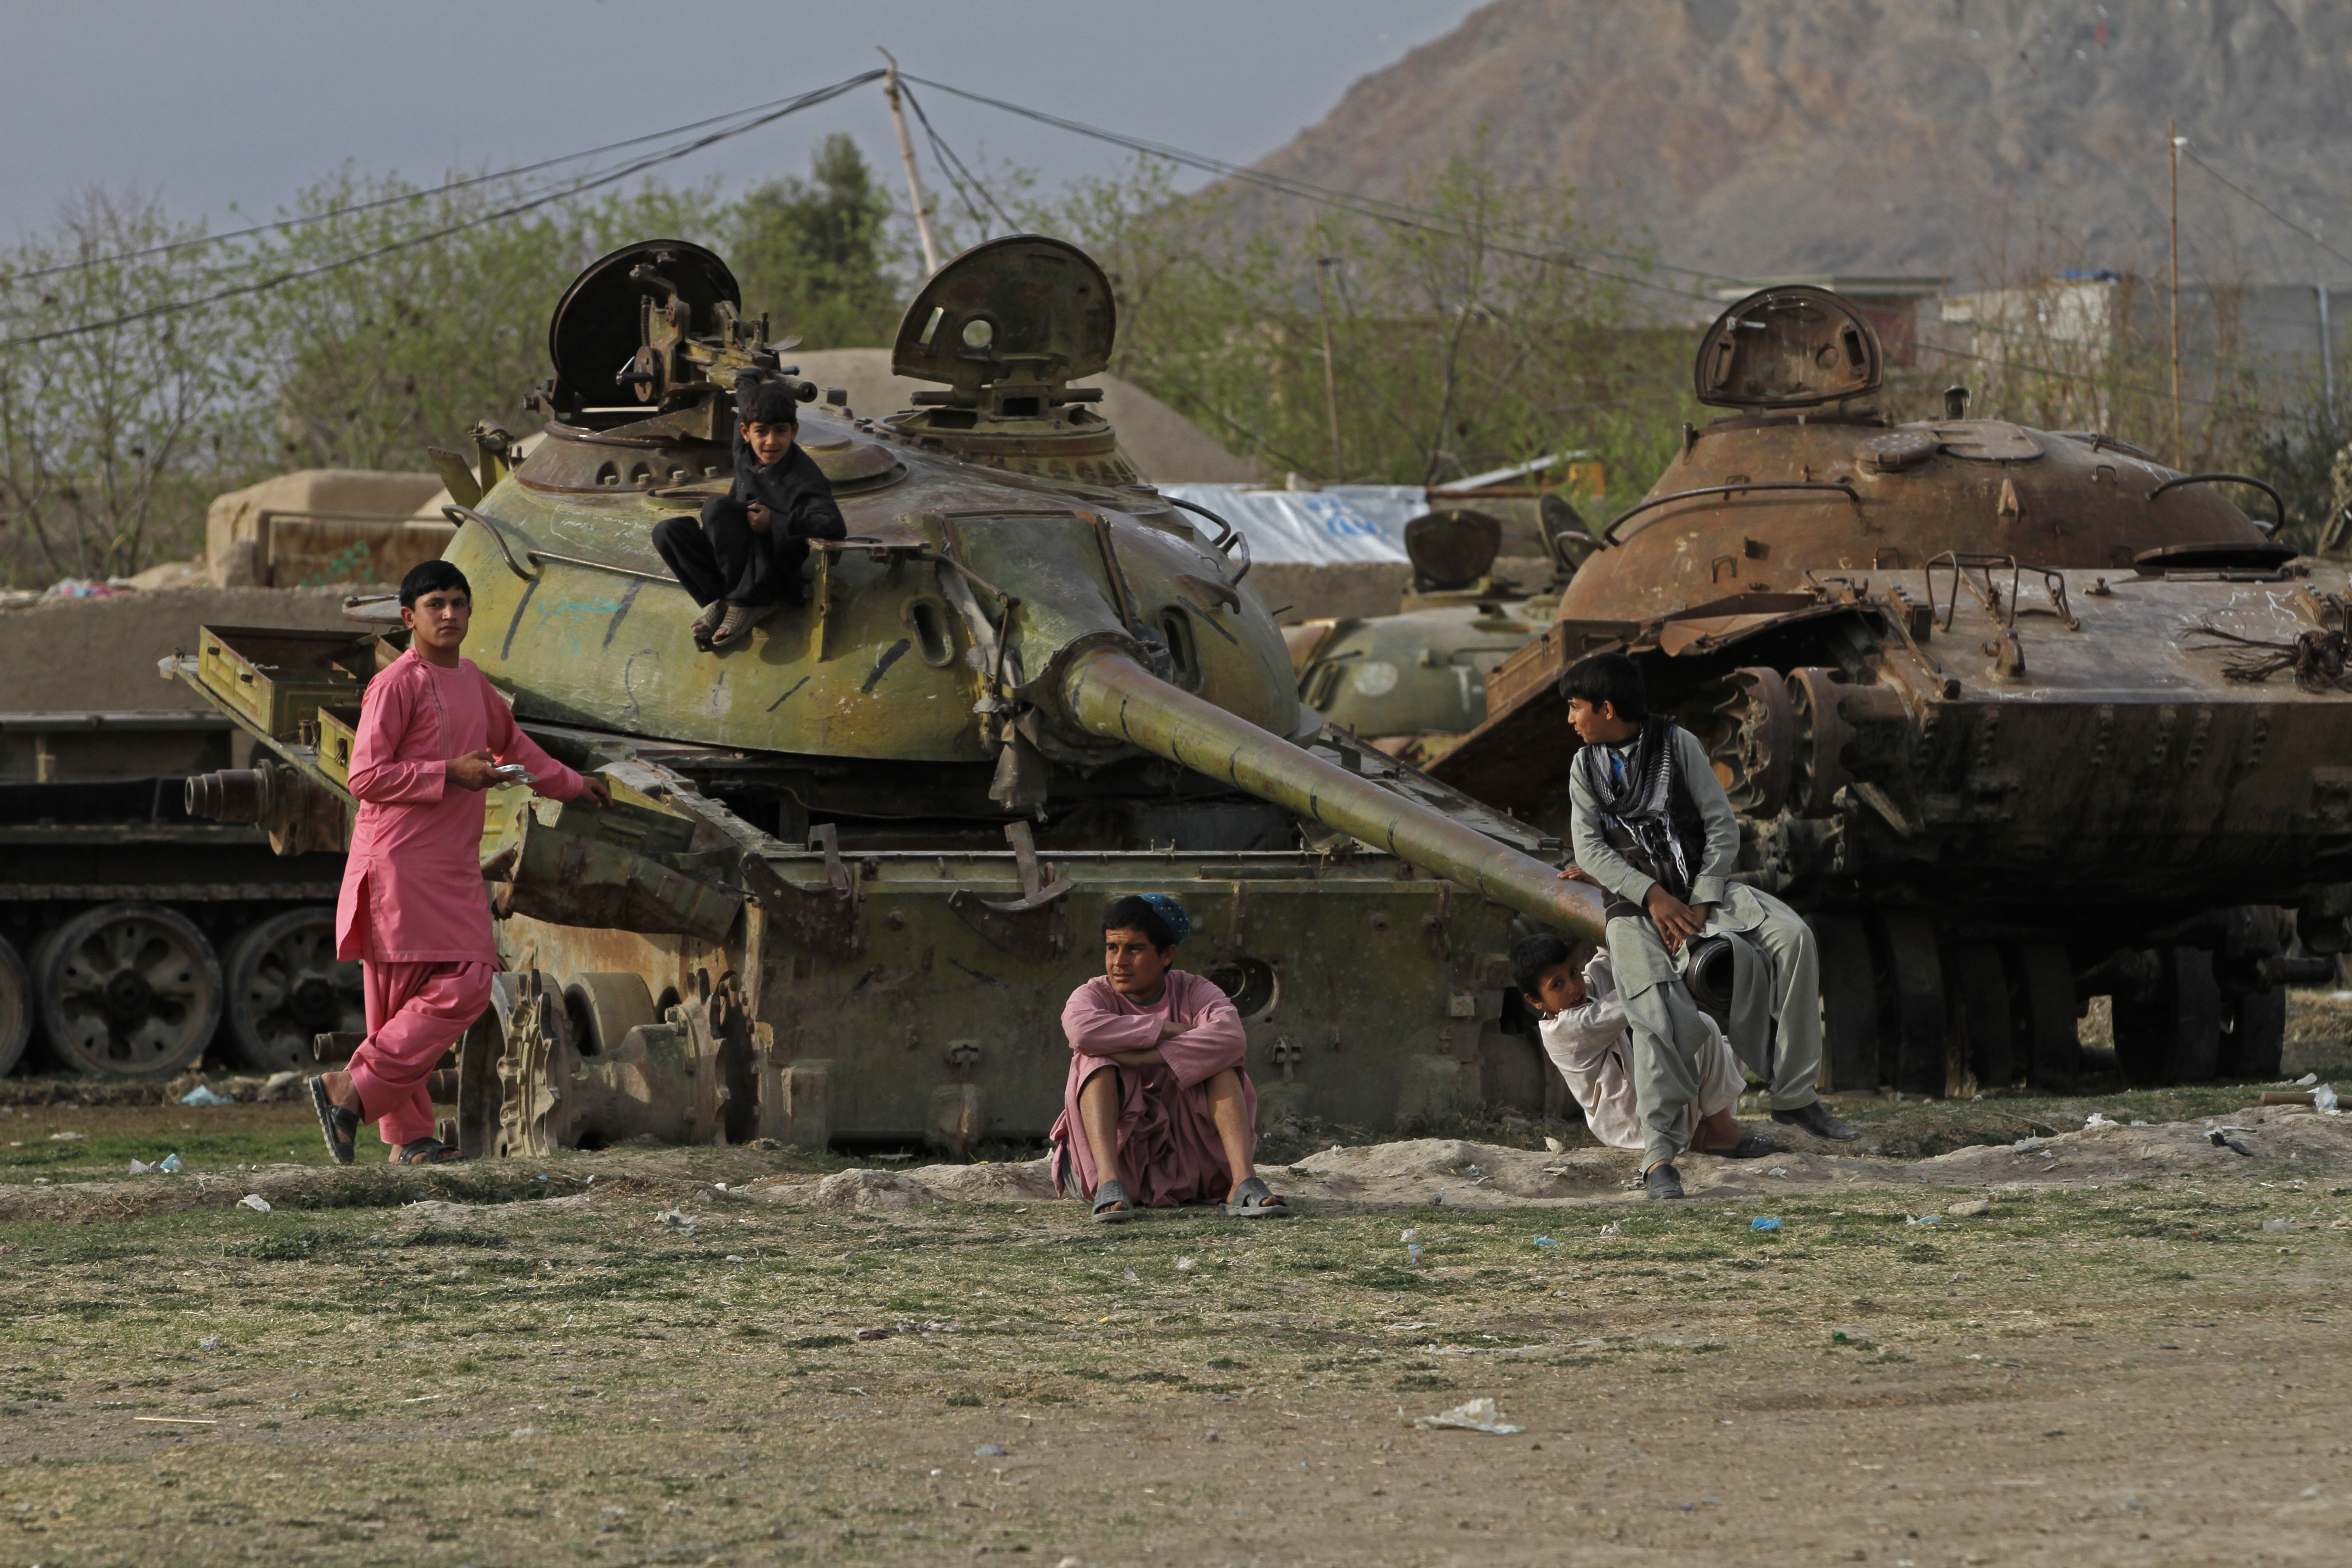 FILE - Afghan boys play on the remains of an old Soviet tank on the outskirts of Kandahar, south of Kabul, Afghanistan, Feb. 21, 2015.